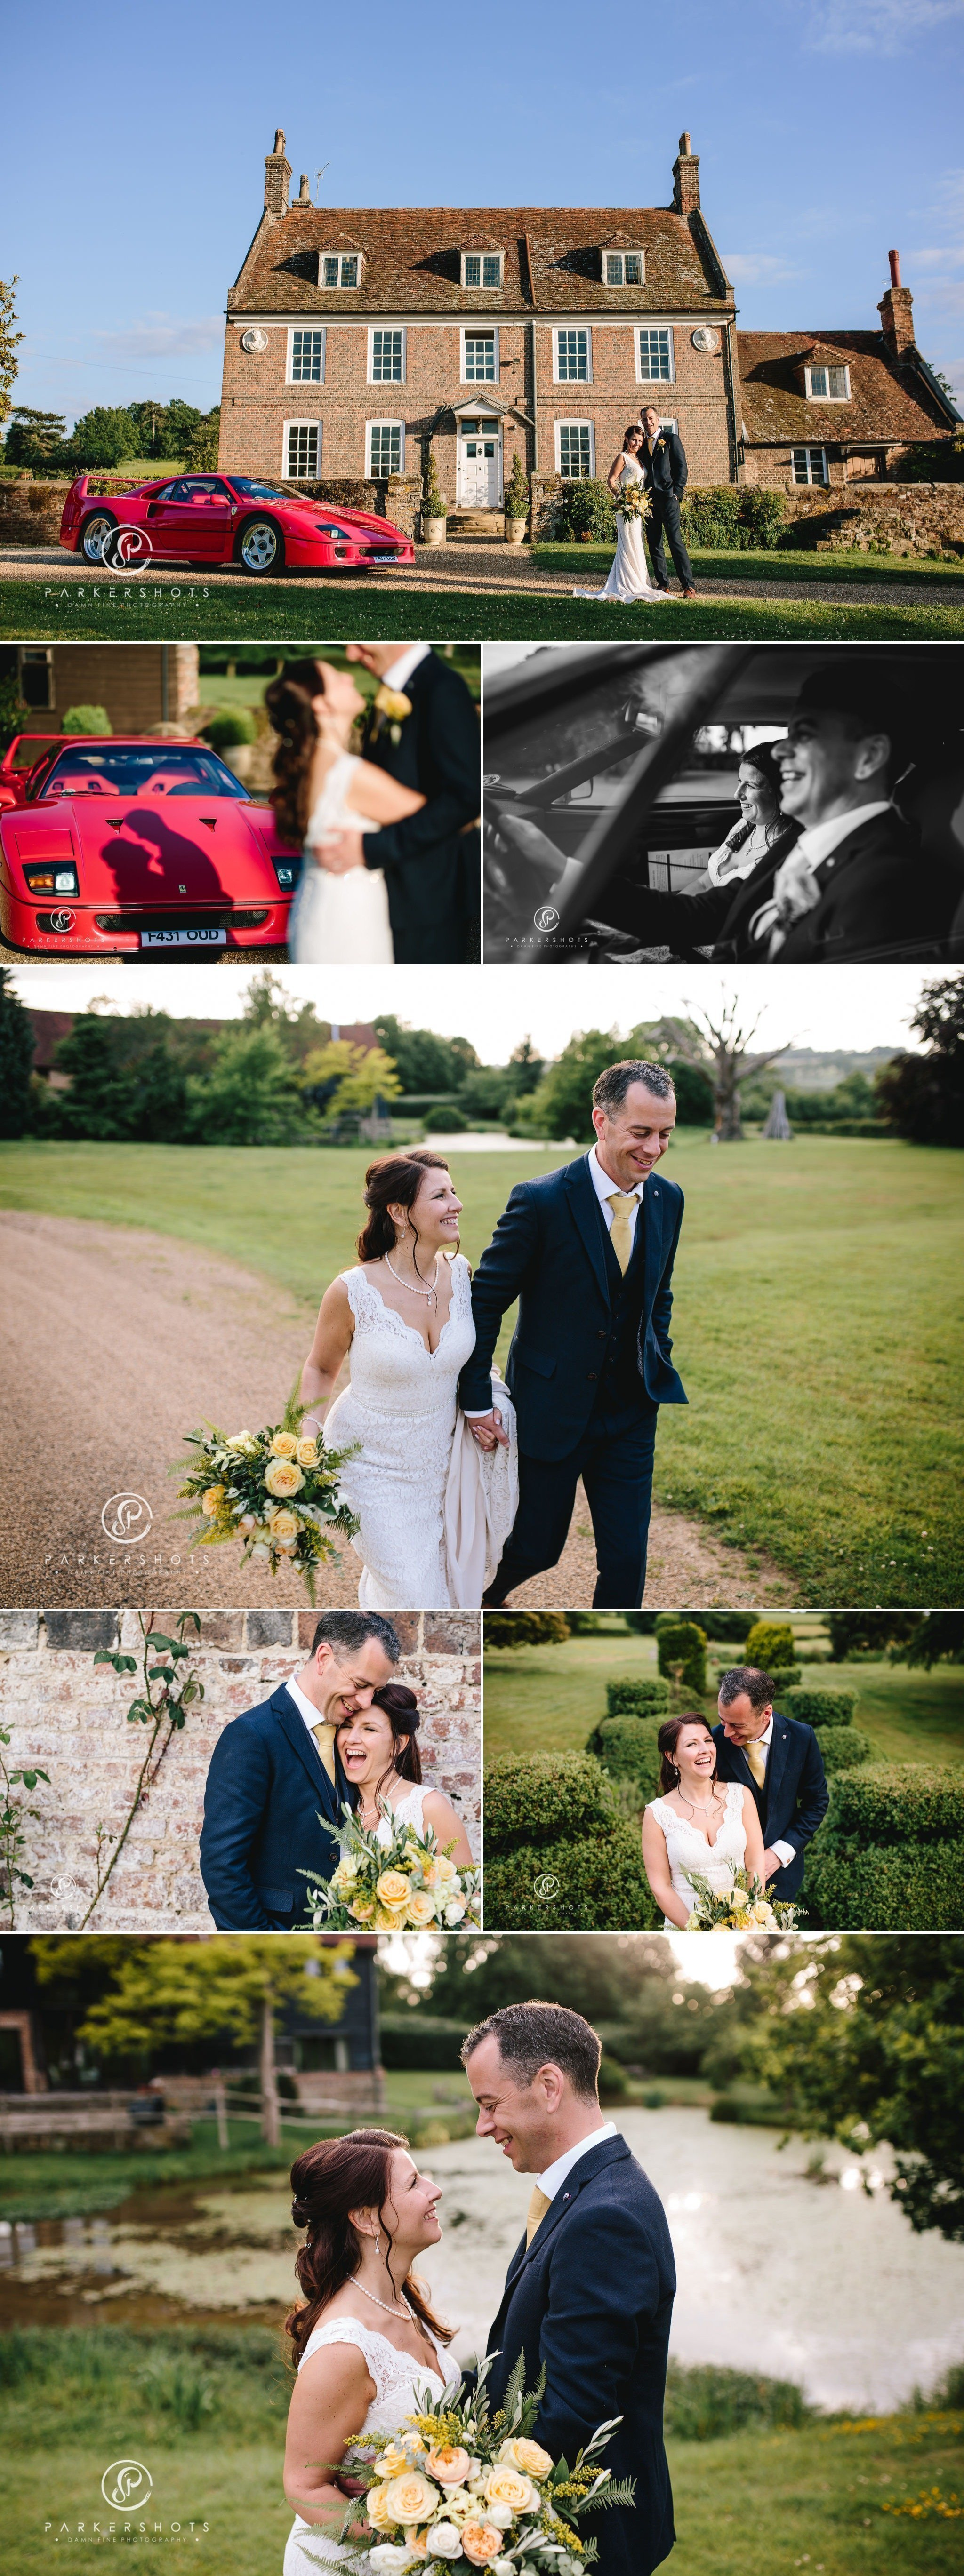 Awesome wedding photography at Chafford Park